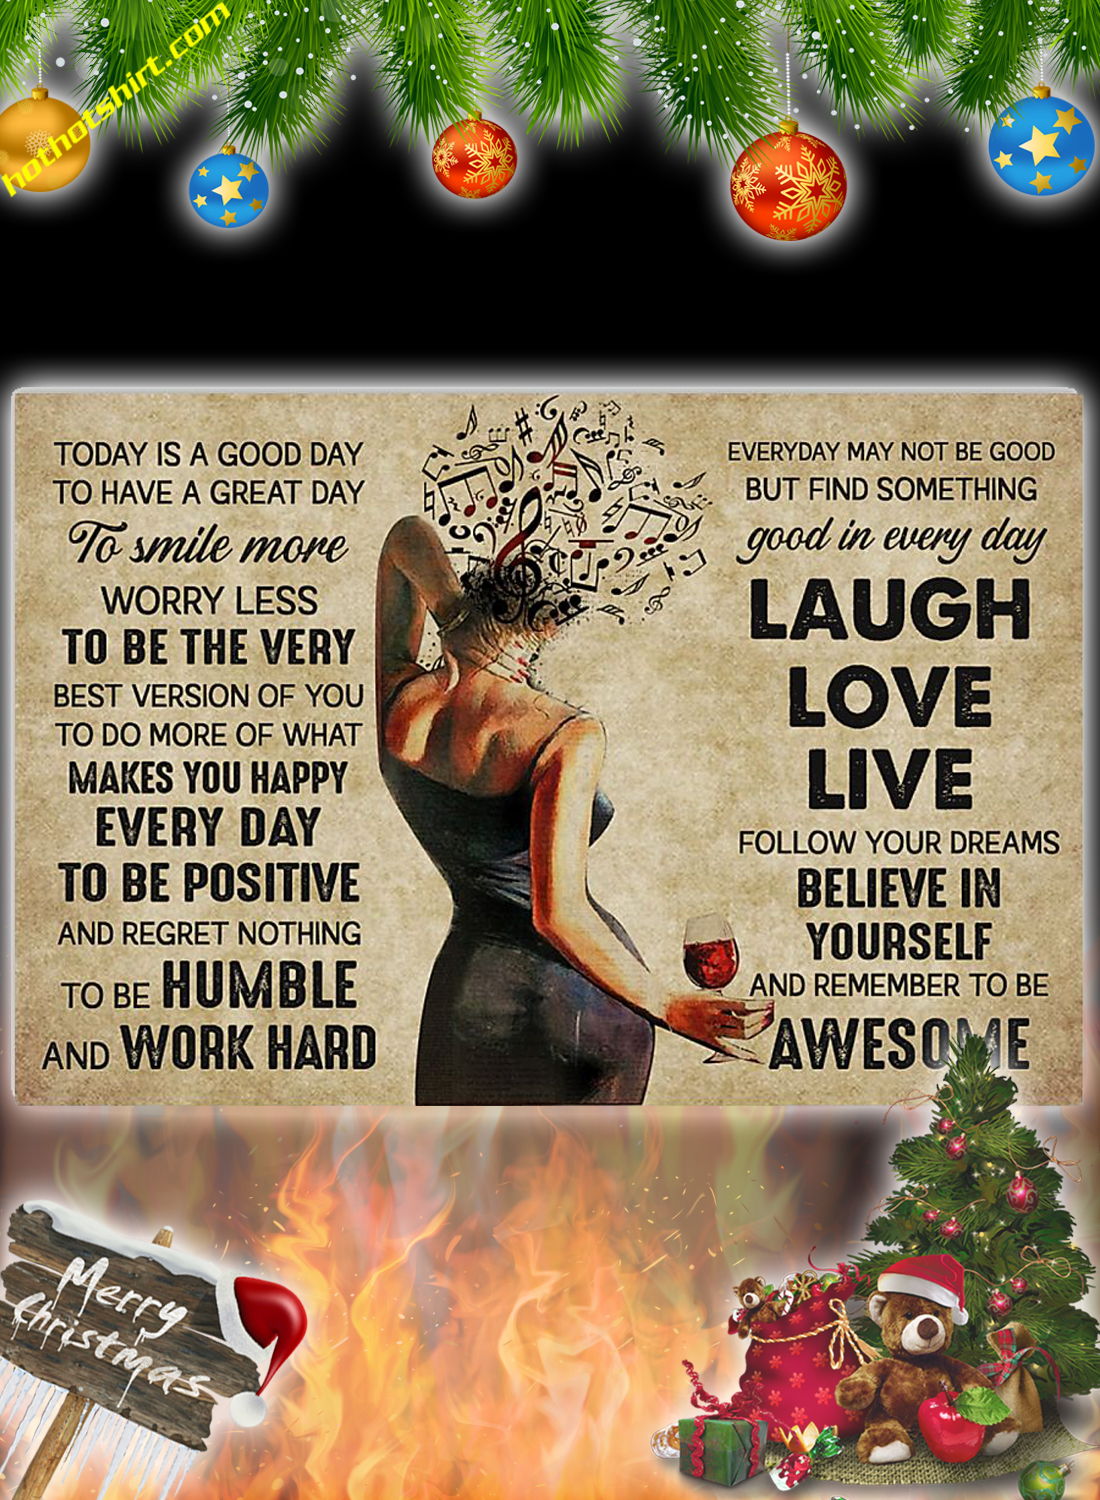 Music wine girl Today is a good day poster 2